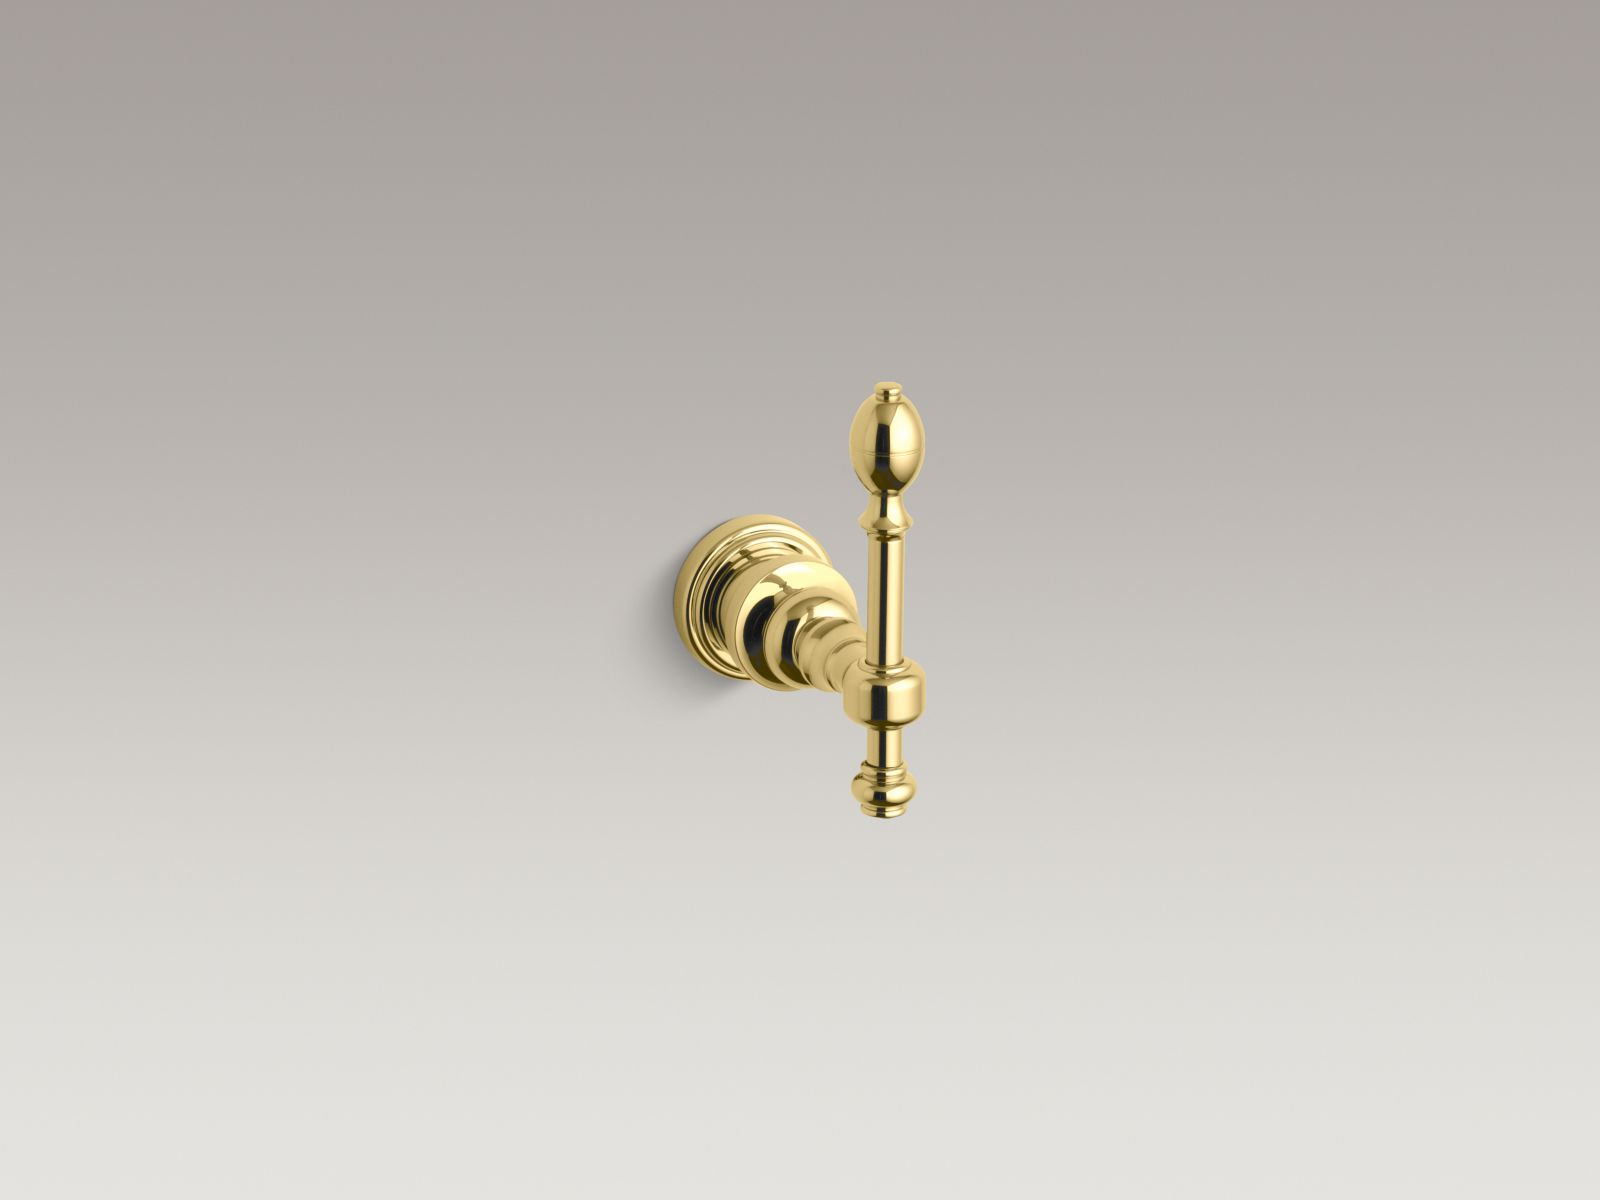 Kohler K-6821-PB IV Georges Brass Robe Hook Vibrant Polished Brass